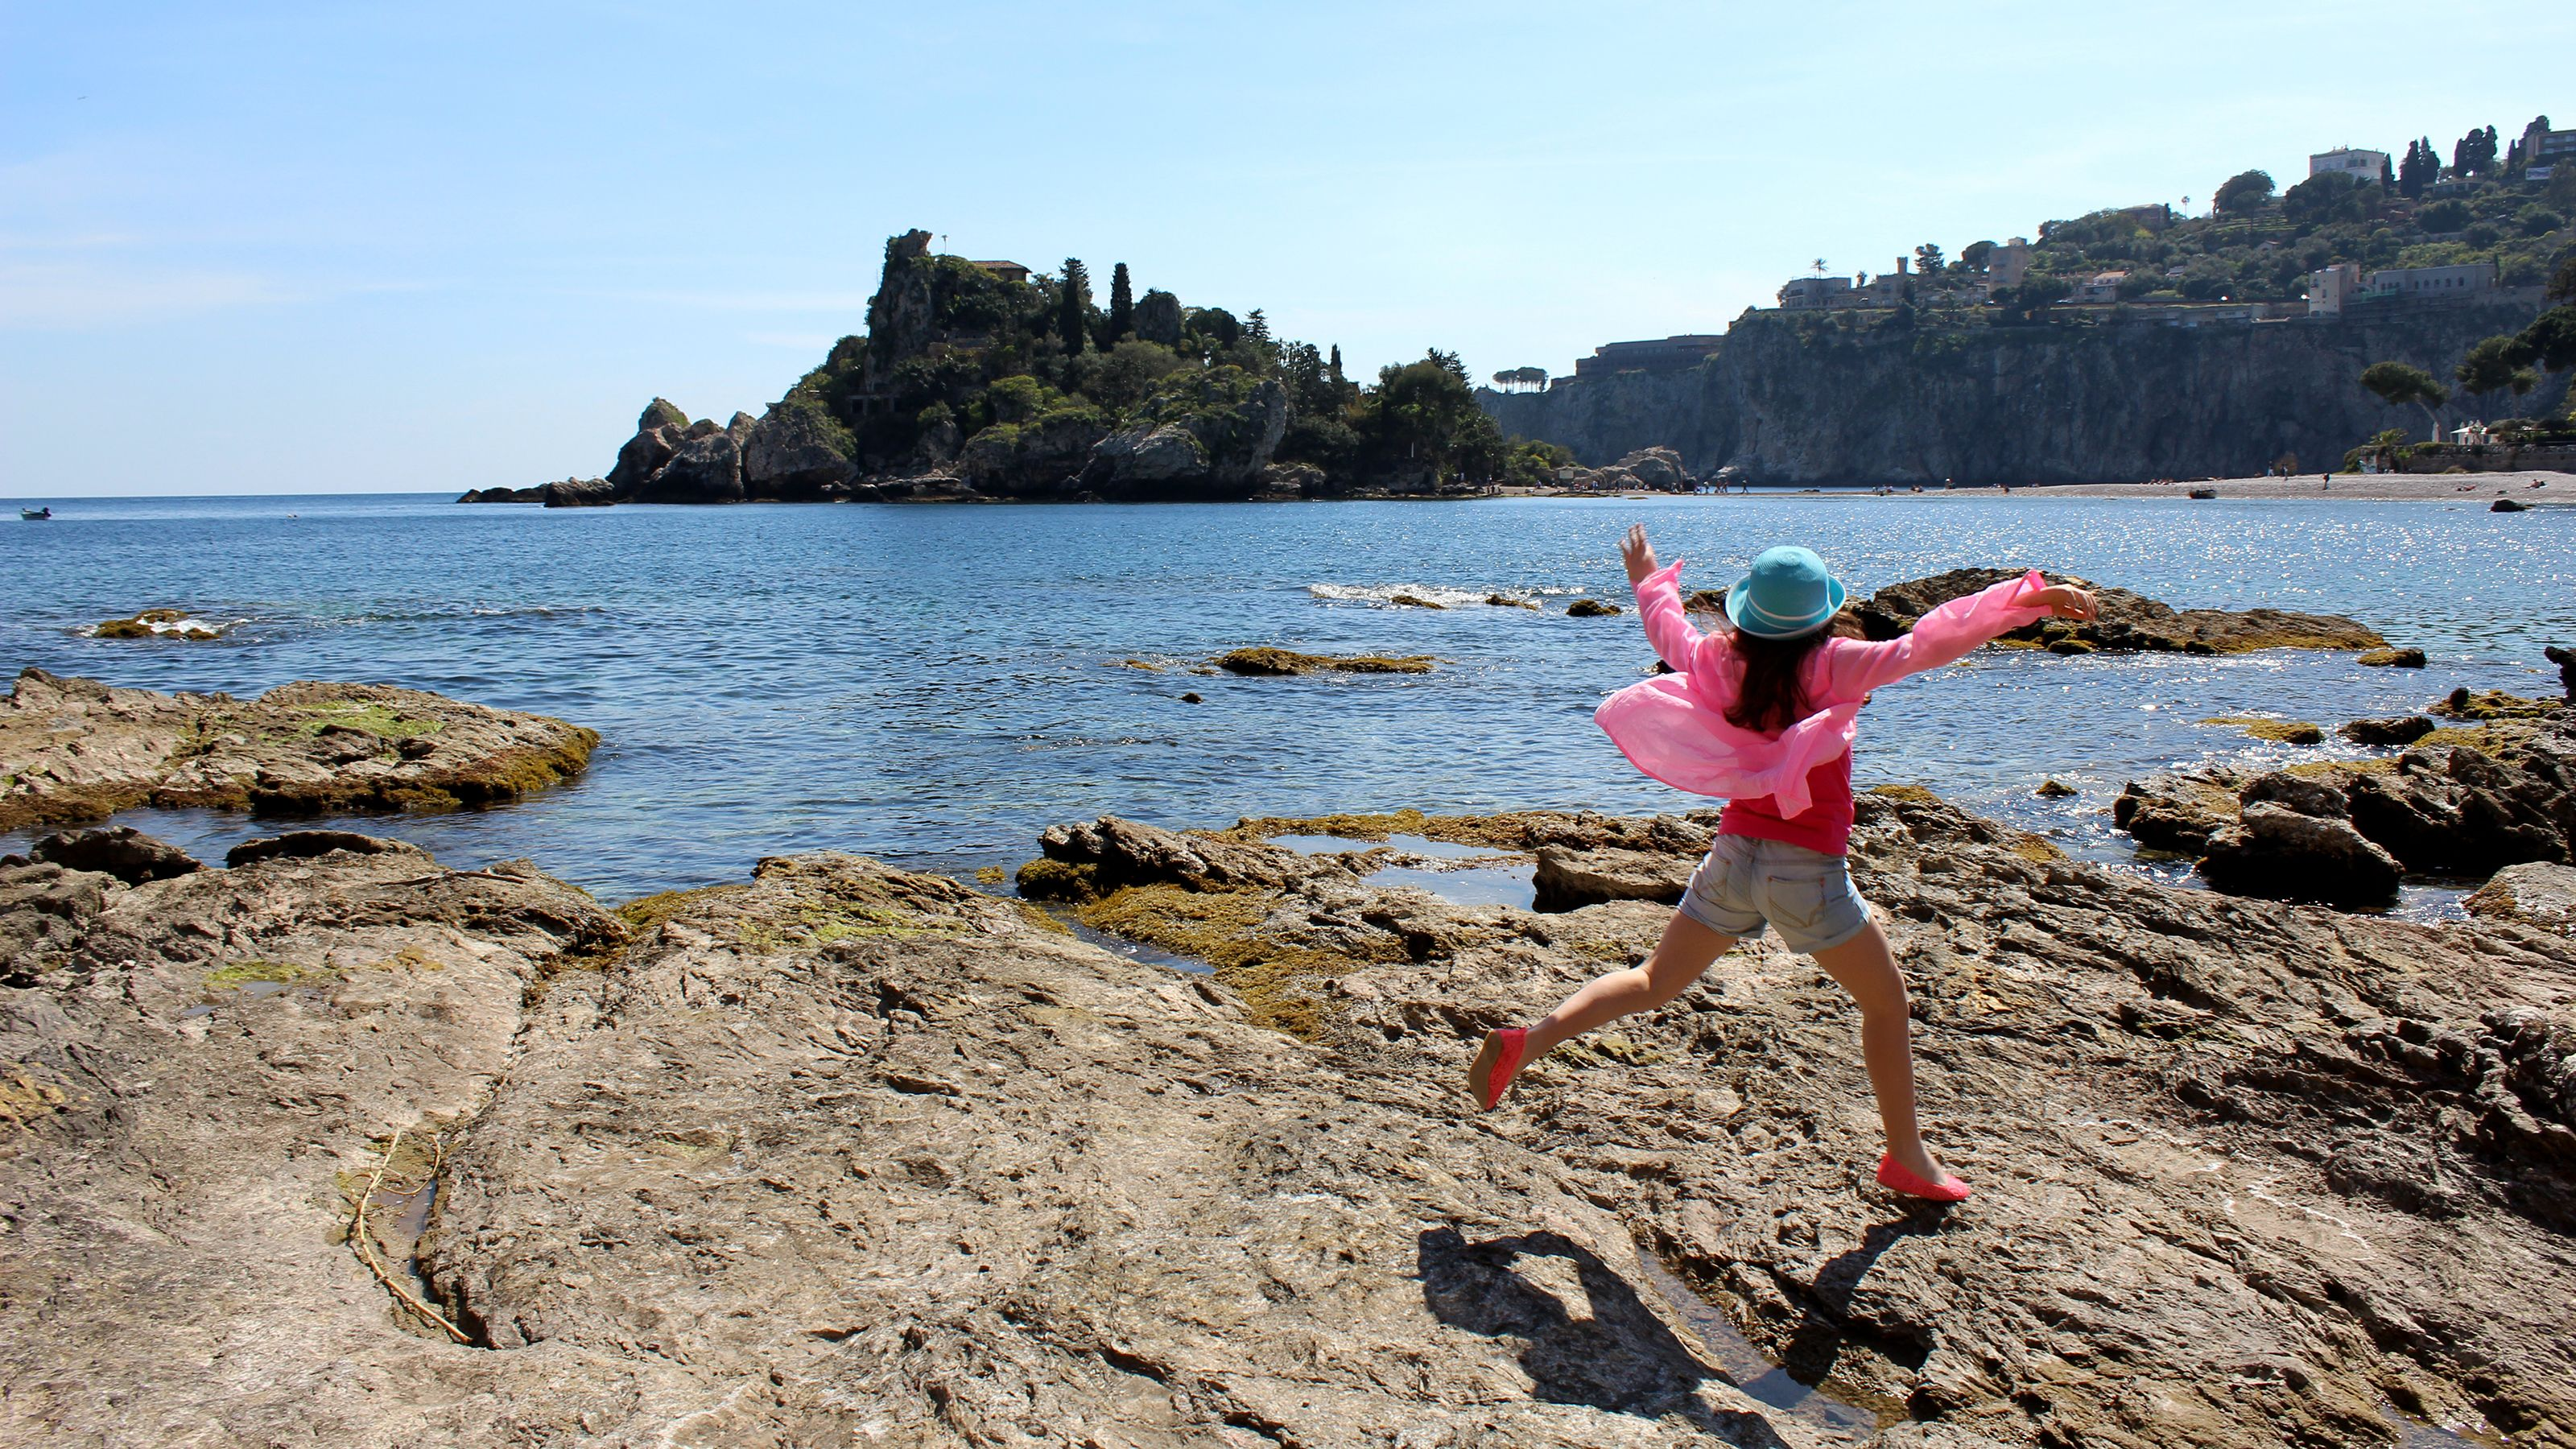 Woman jumps on shore during Taormina Boat Tour